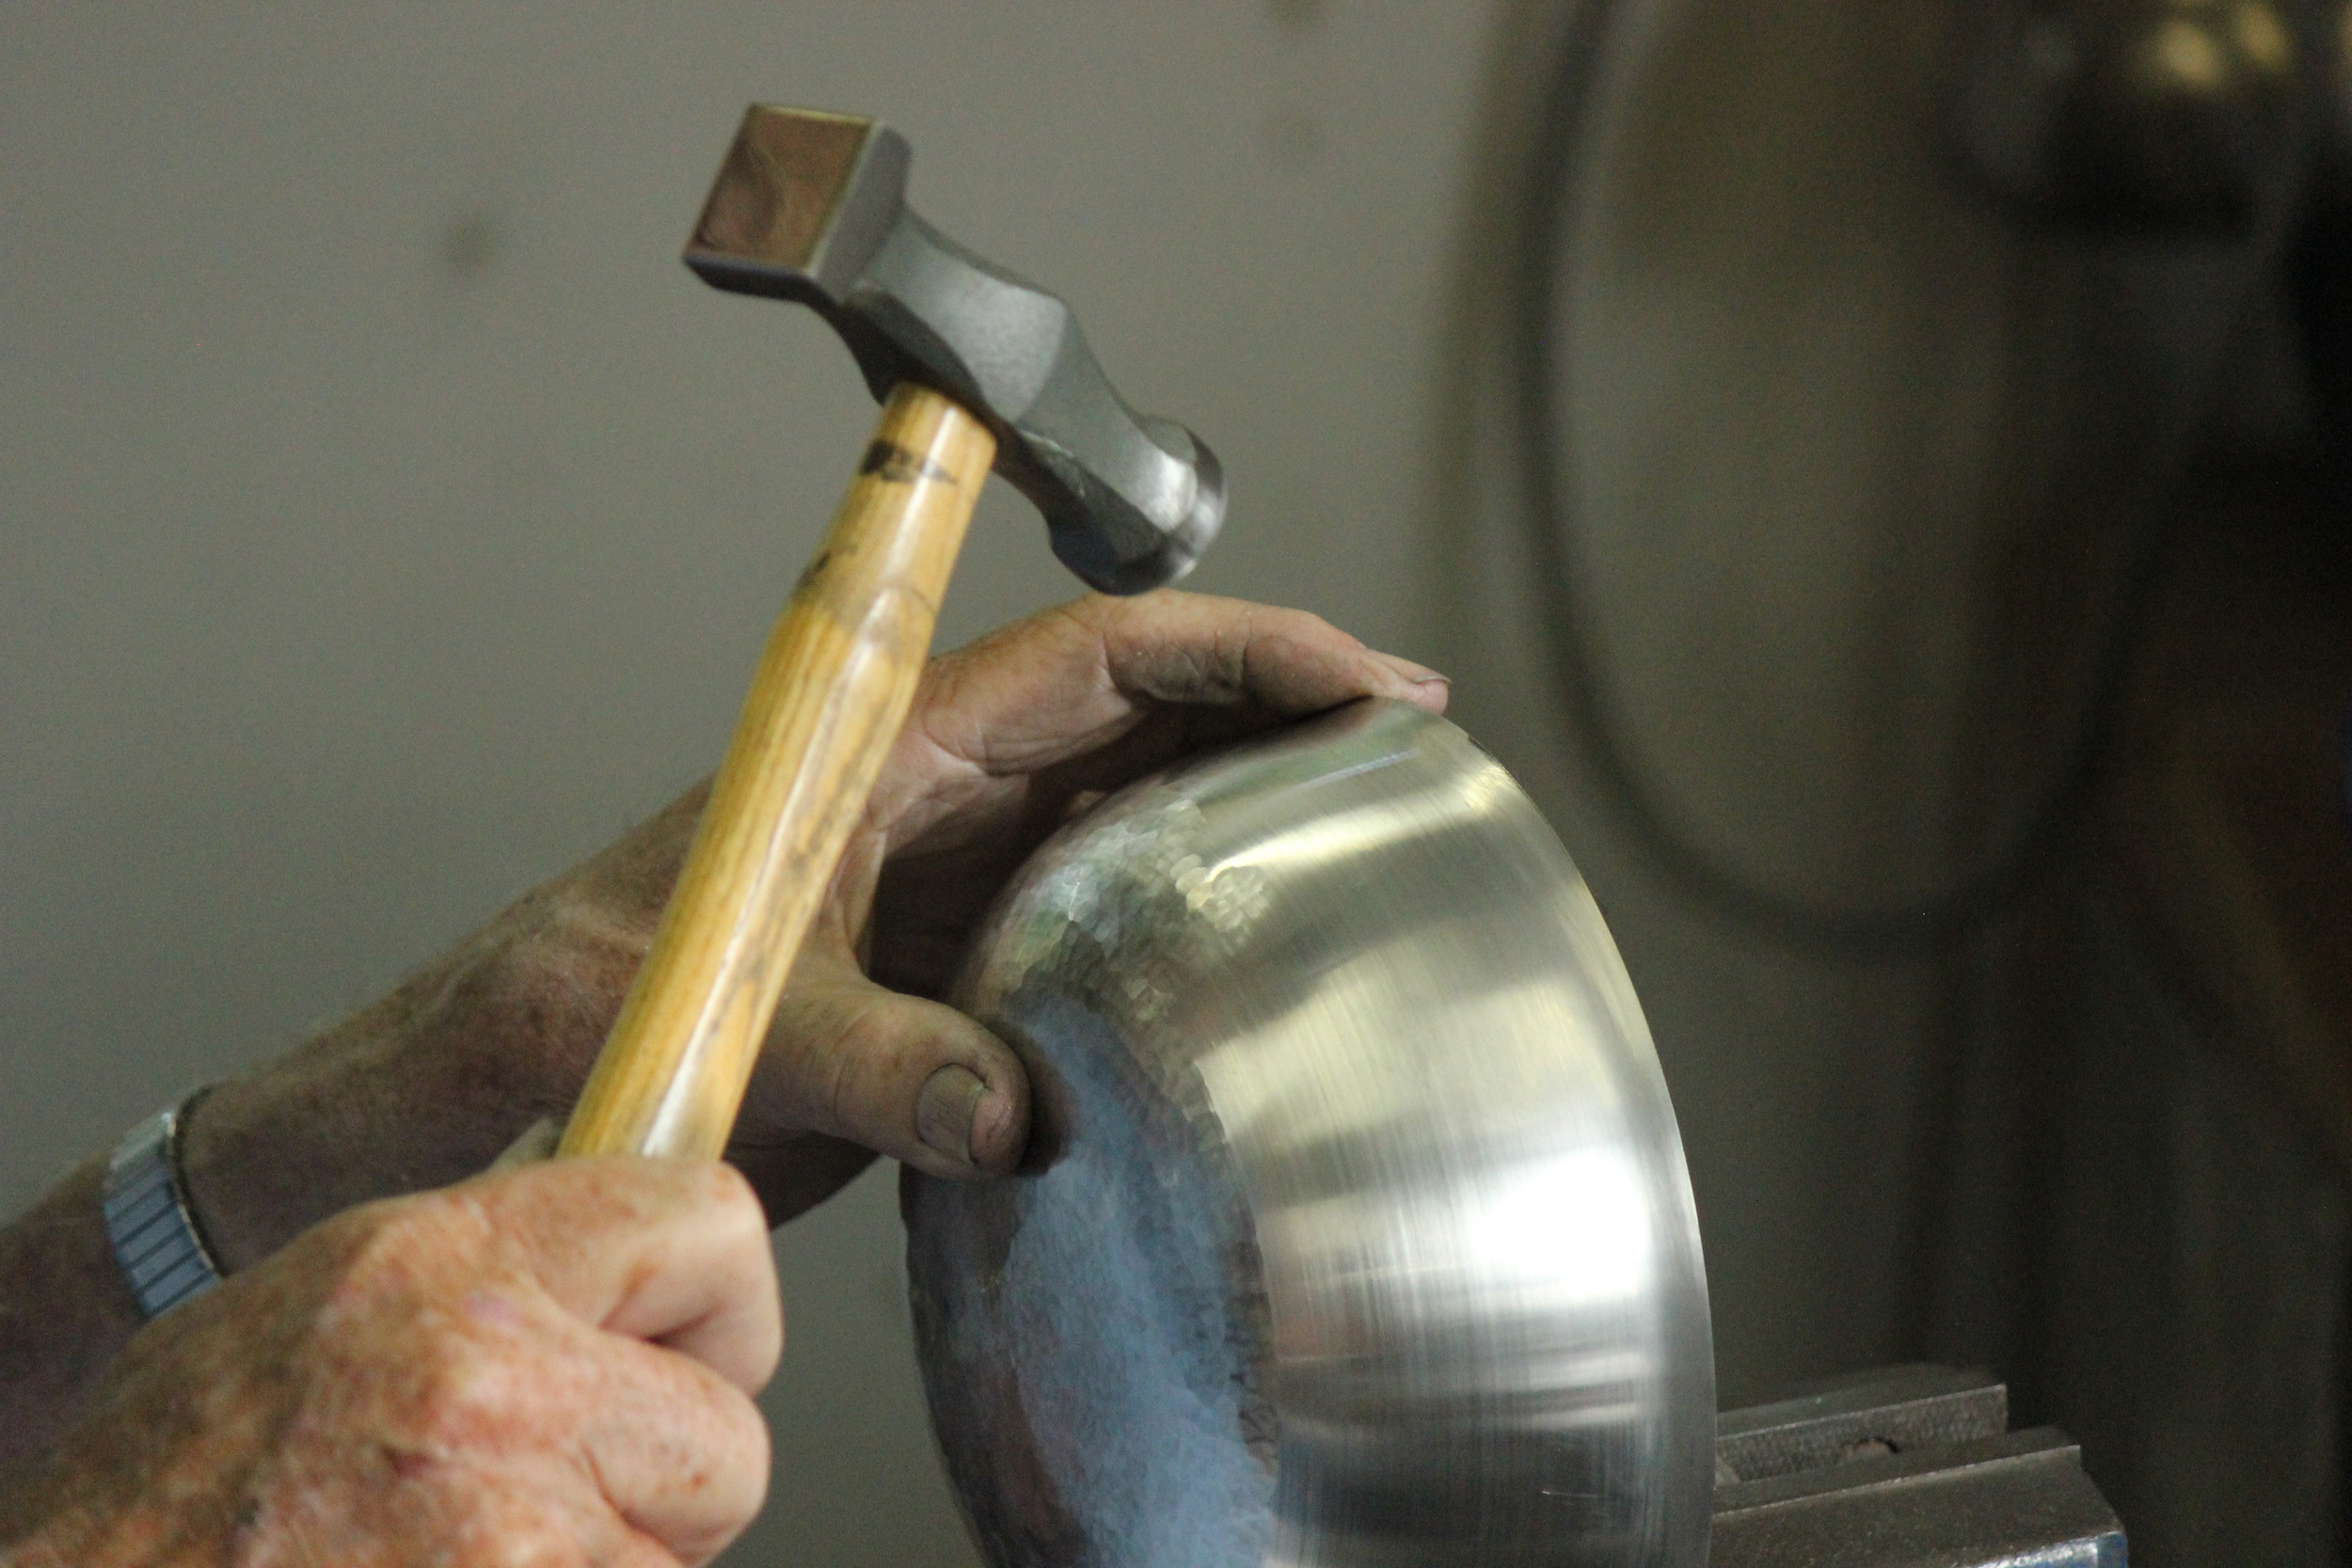 Hammering a pewter bowl in order to achieve a planished finish.